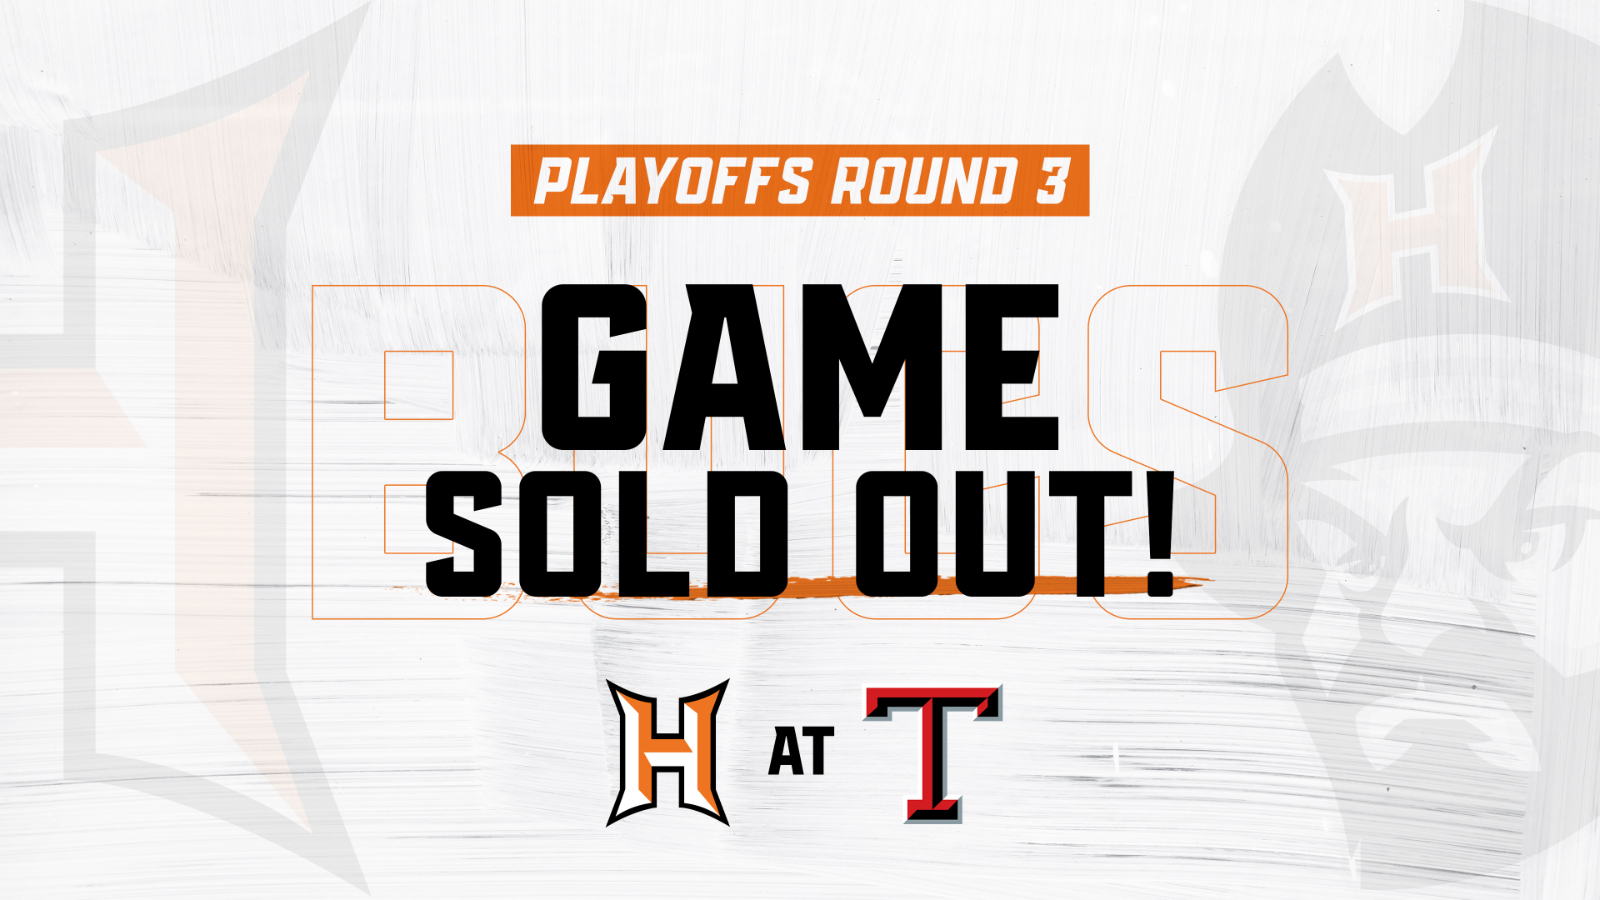 PLAYOFF TICKETS ARE SOLD OUT